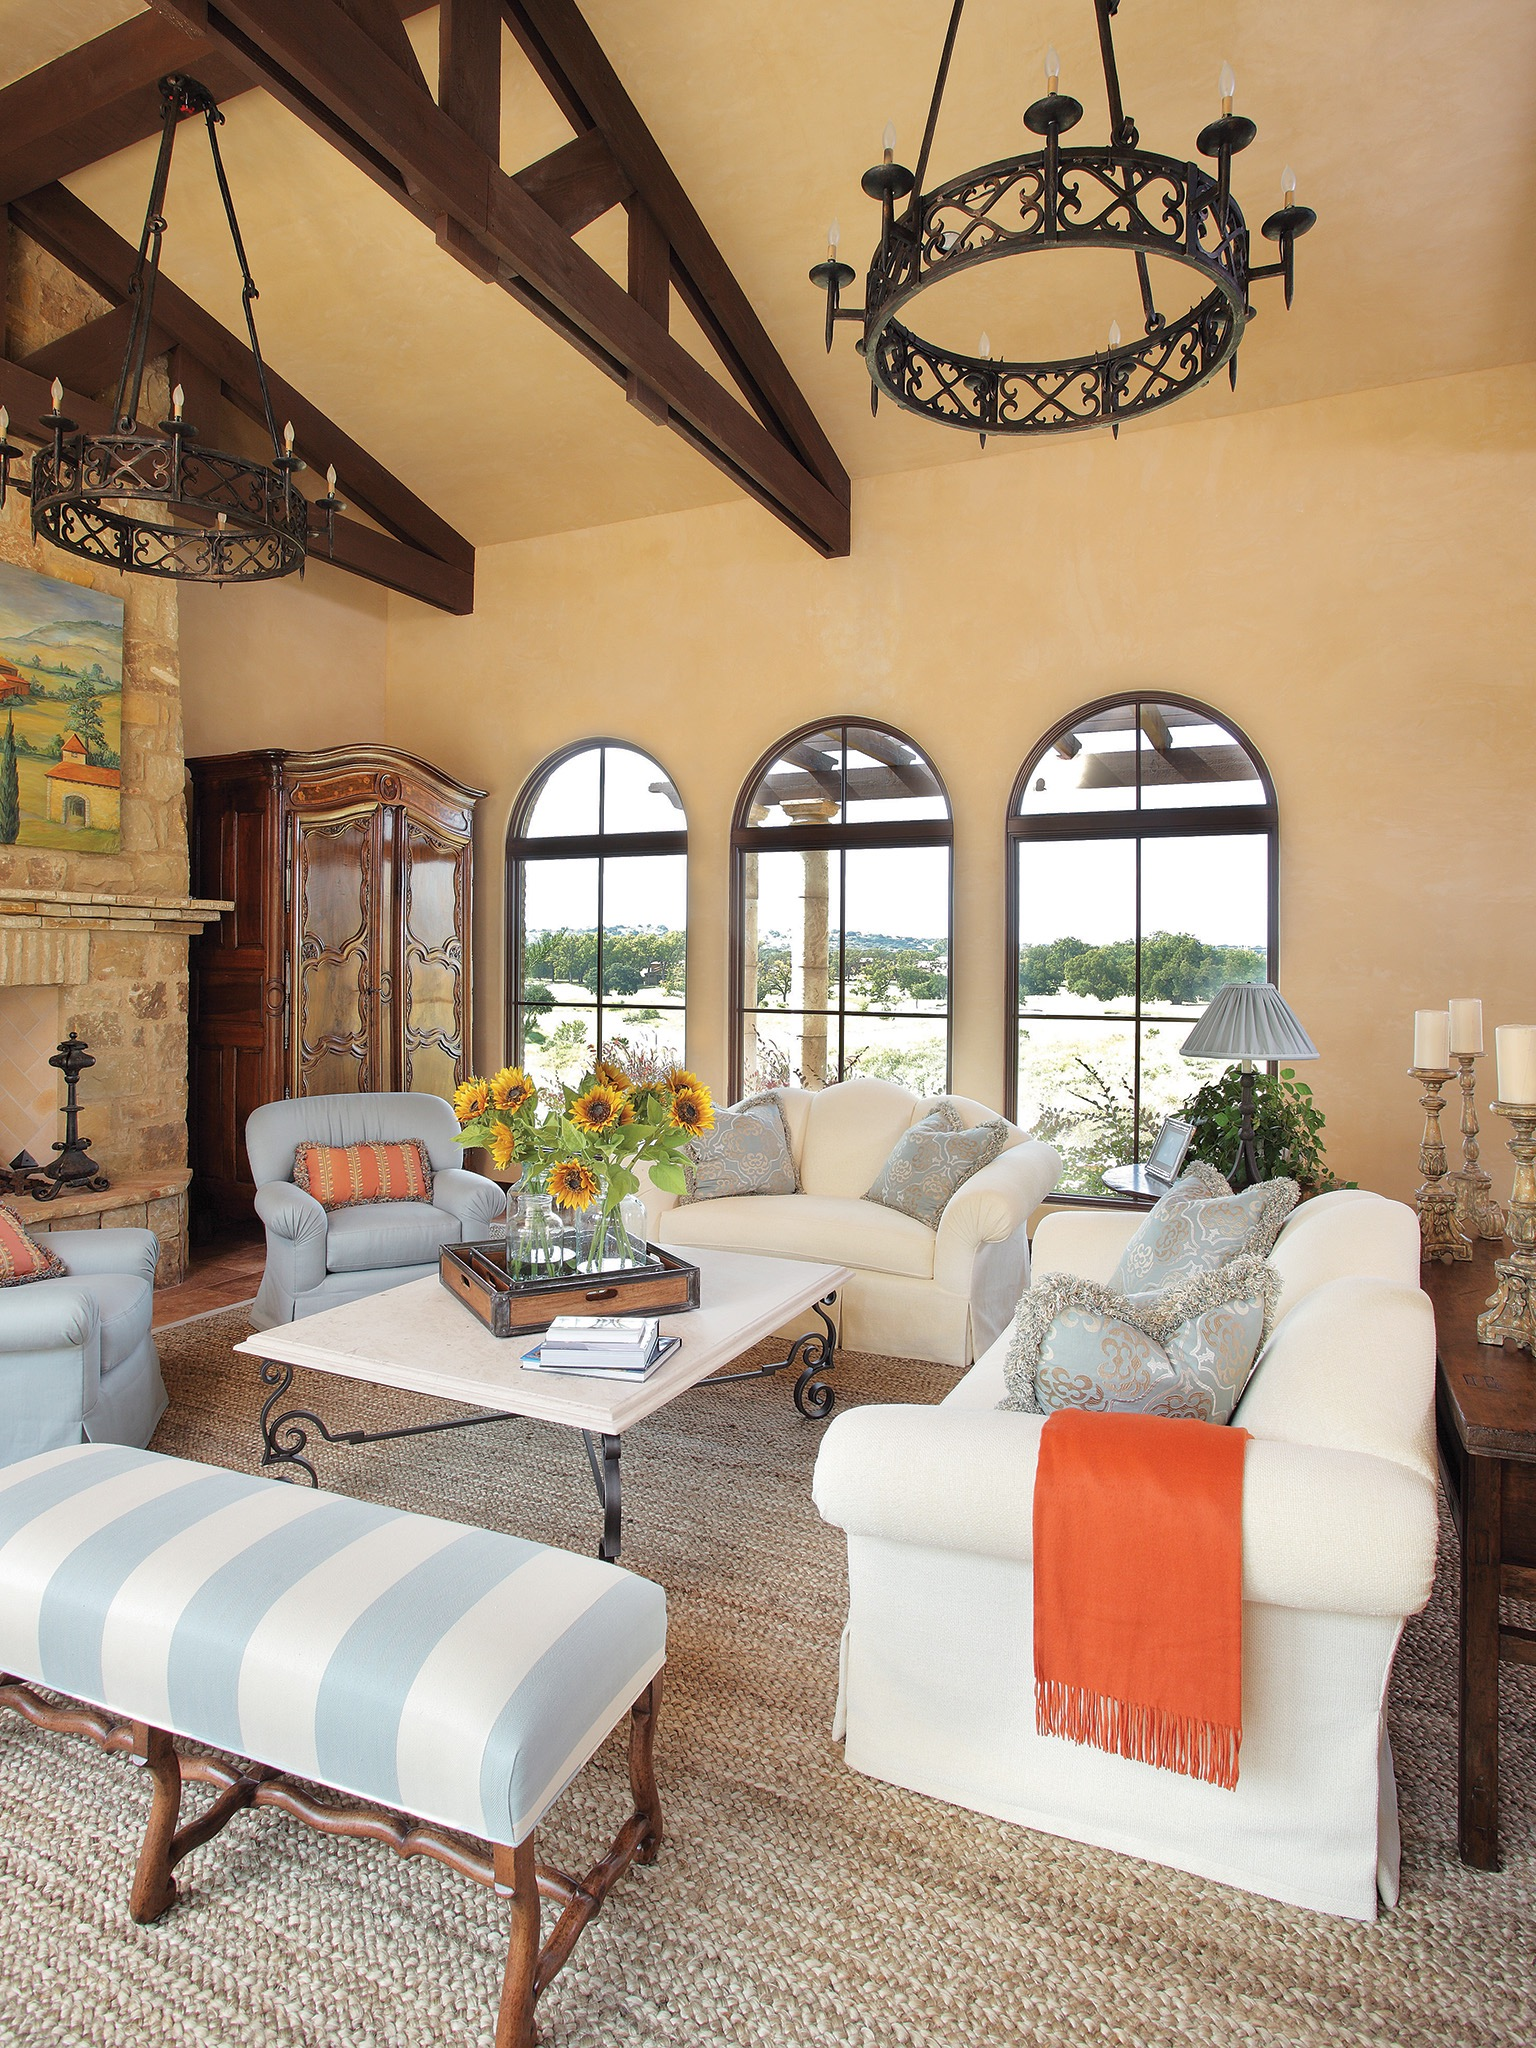 Traditional Italian Living Room With Iron Chandeliers, Arched Windows And A Stone Fireplace (View 15 of 20)